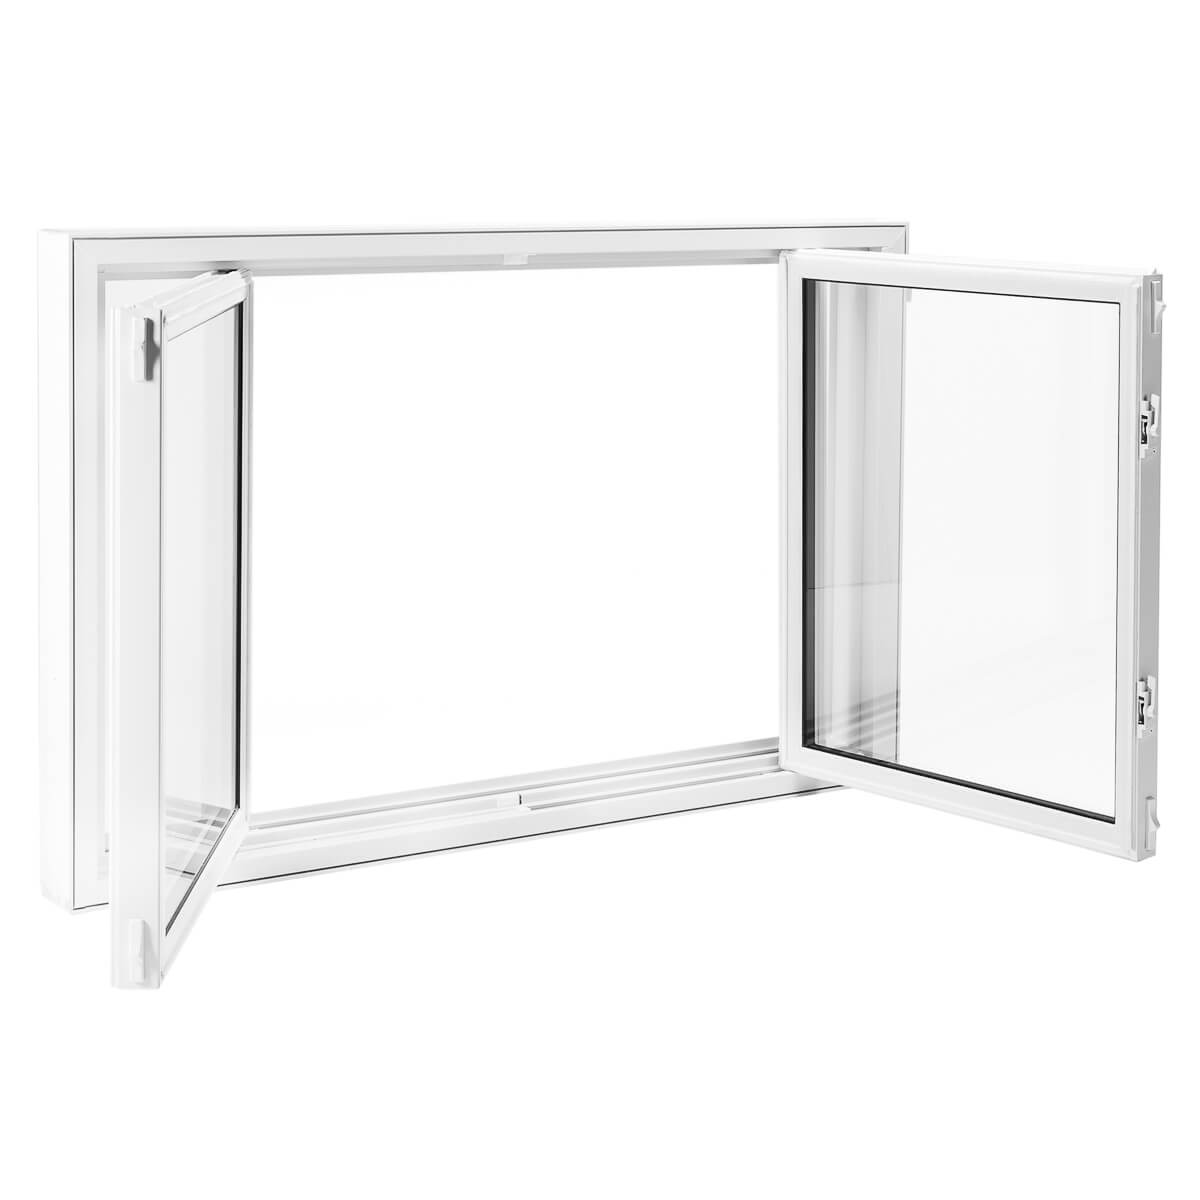 Custom Manufactured Side Slider Window